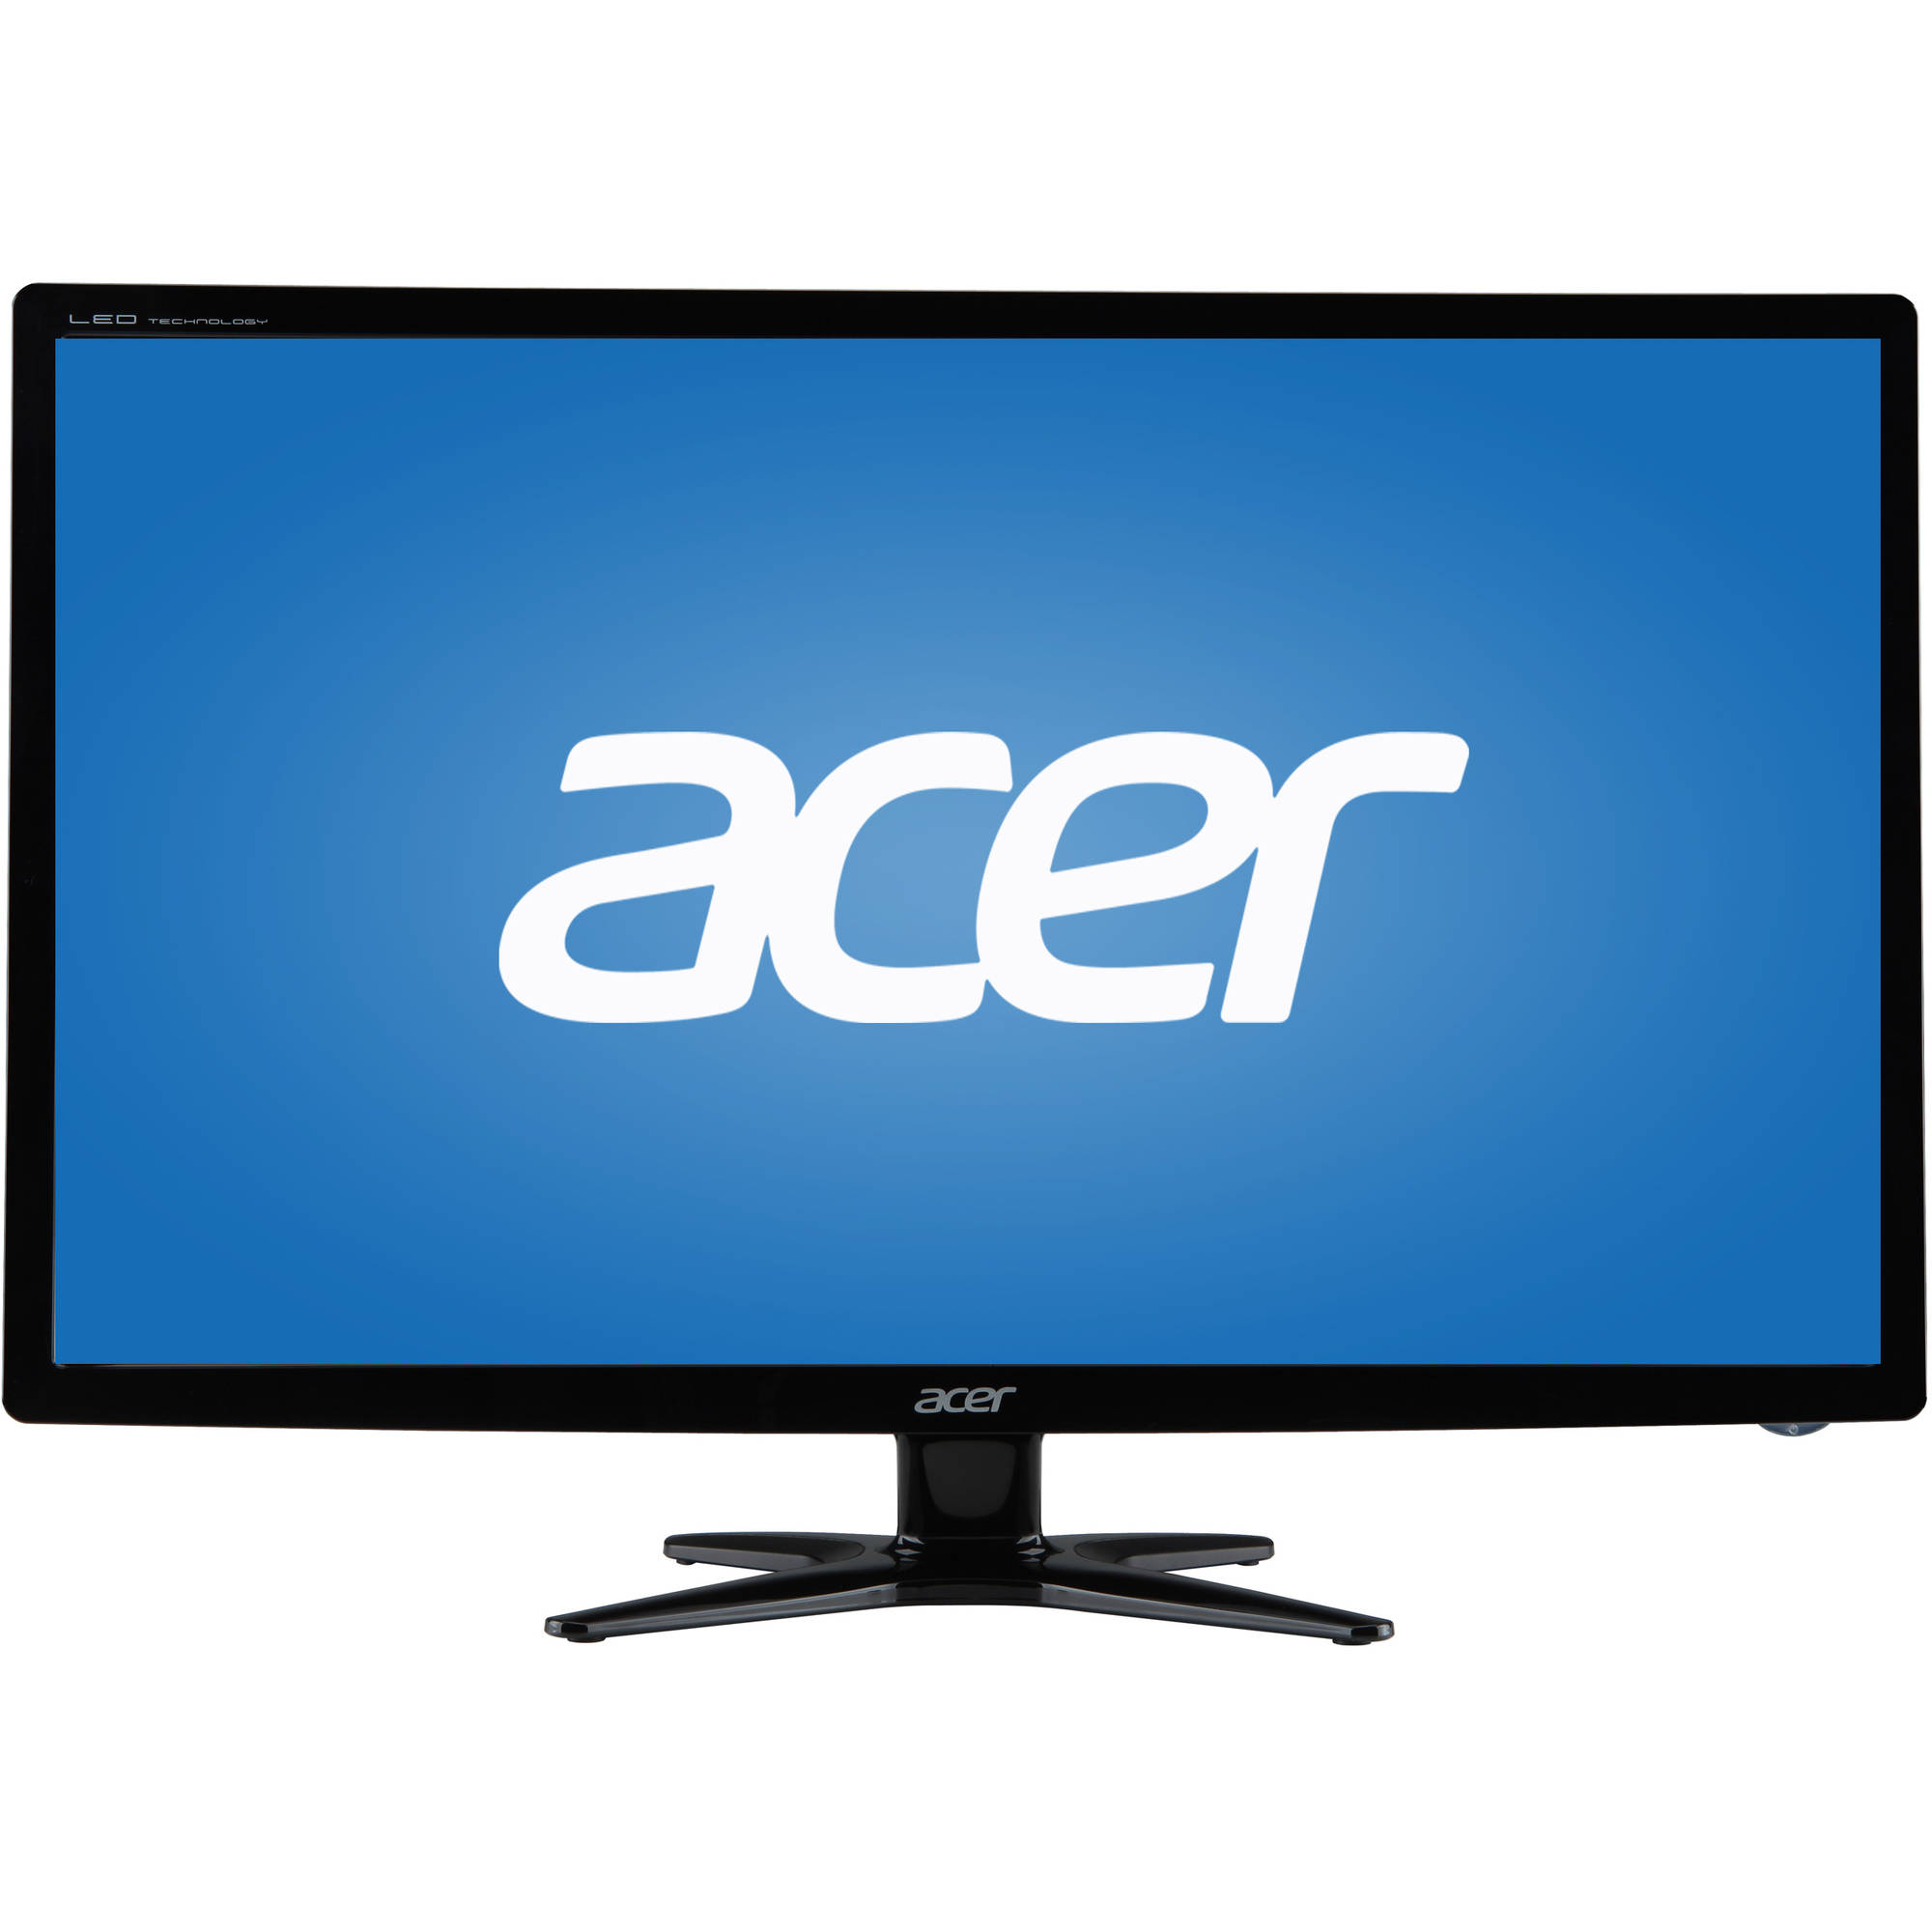 """Refurbished Acer 27"""" Widescreen LCD Monitor Display Full HD 1920 x 1080 6 ms VA Tech G276HL Gbd by Acer"""